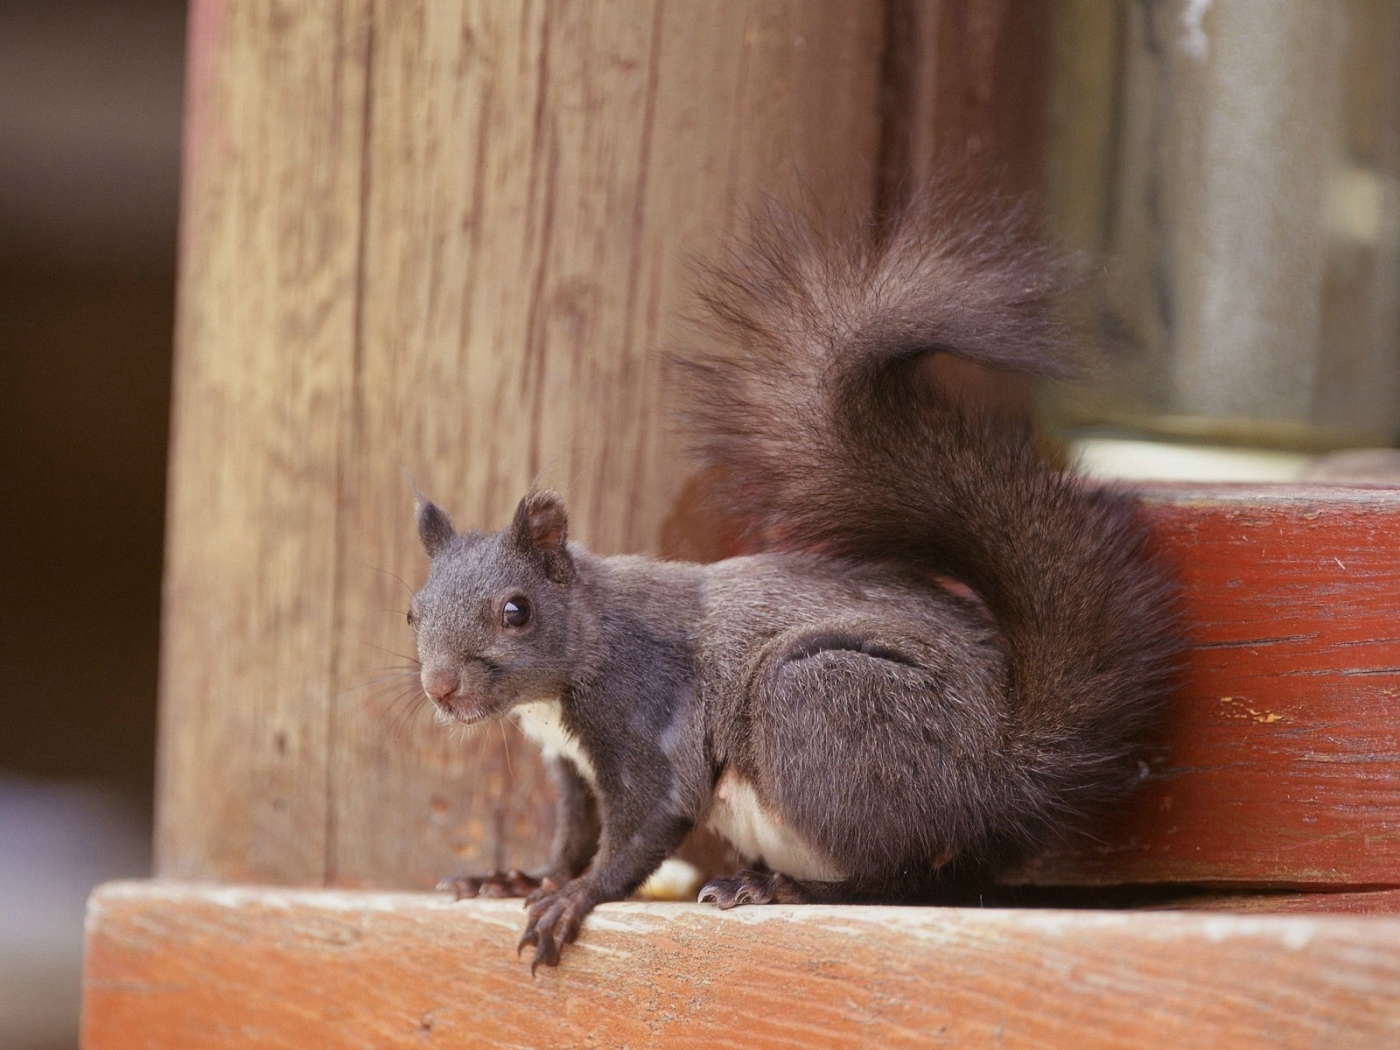 41684 download wallpaper Animals, Squirrel screensavers and pictures for free